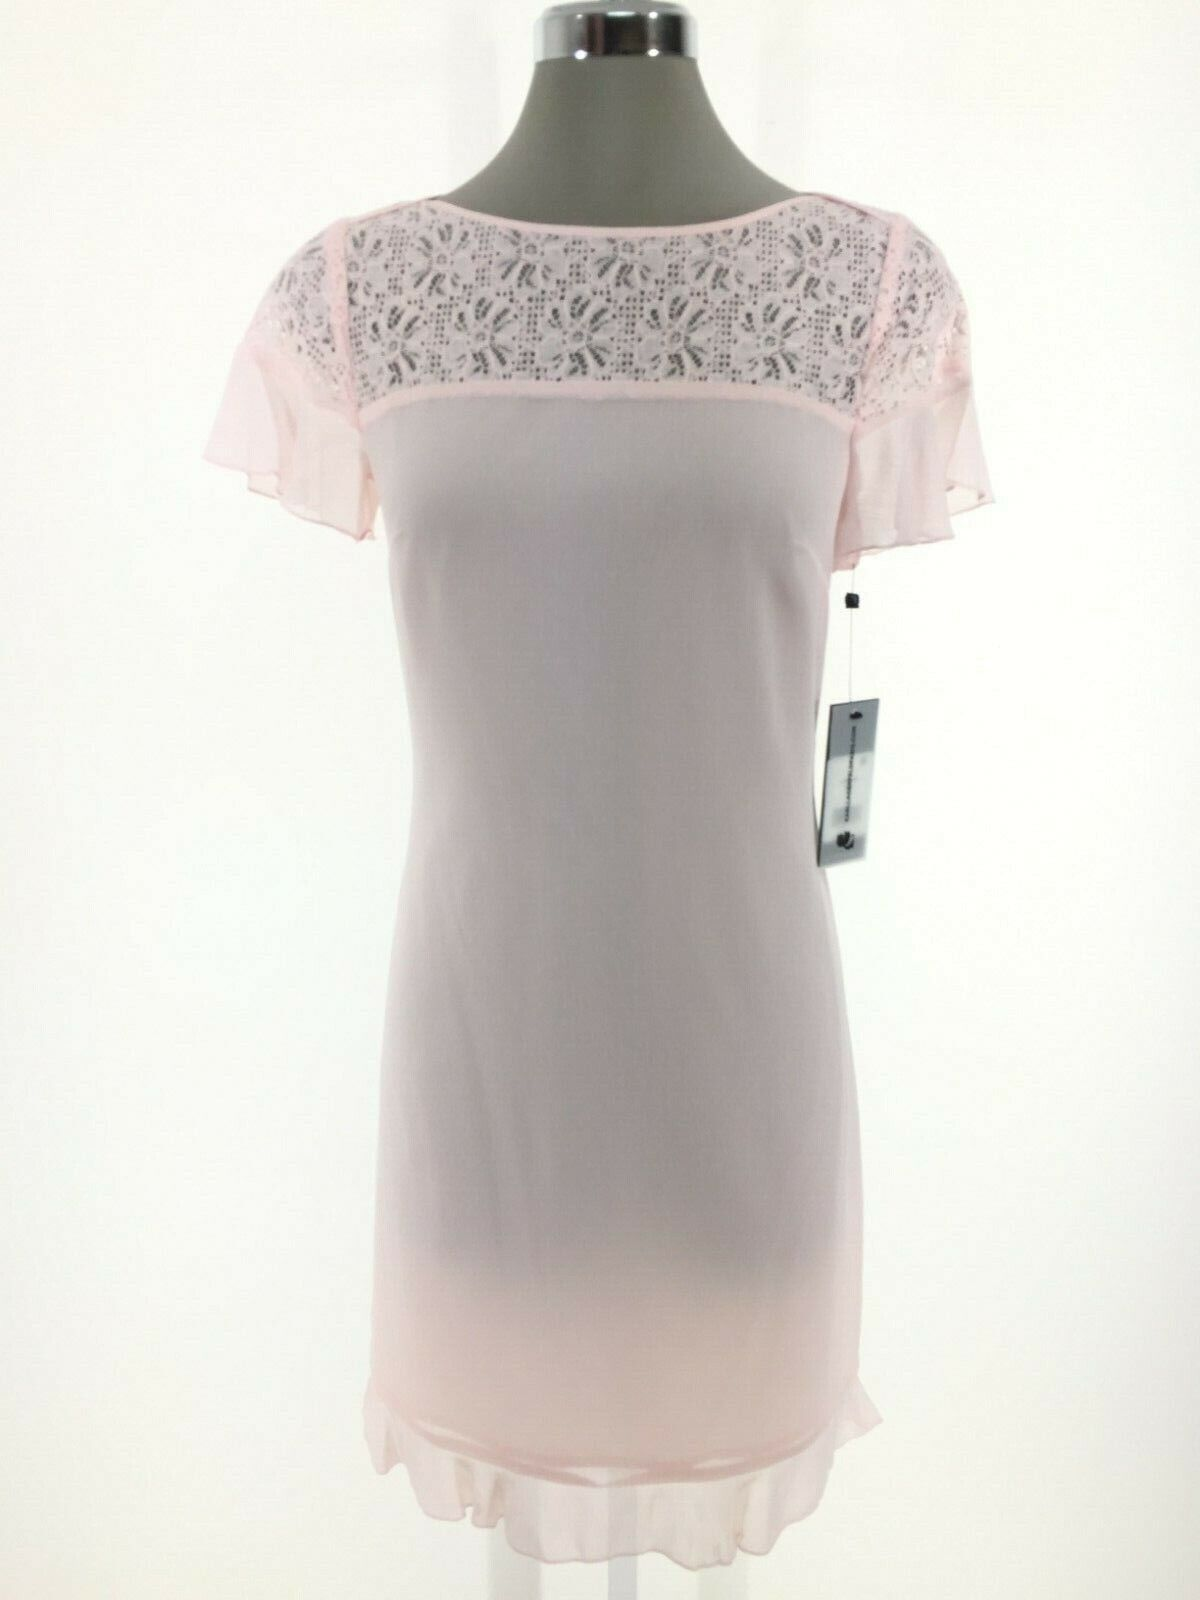 KARL LAGERFELD NEW Elegance @ its Beste pink CREPE w Lace Top DRESS size 0,2,6